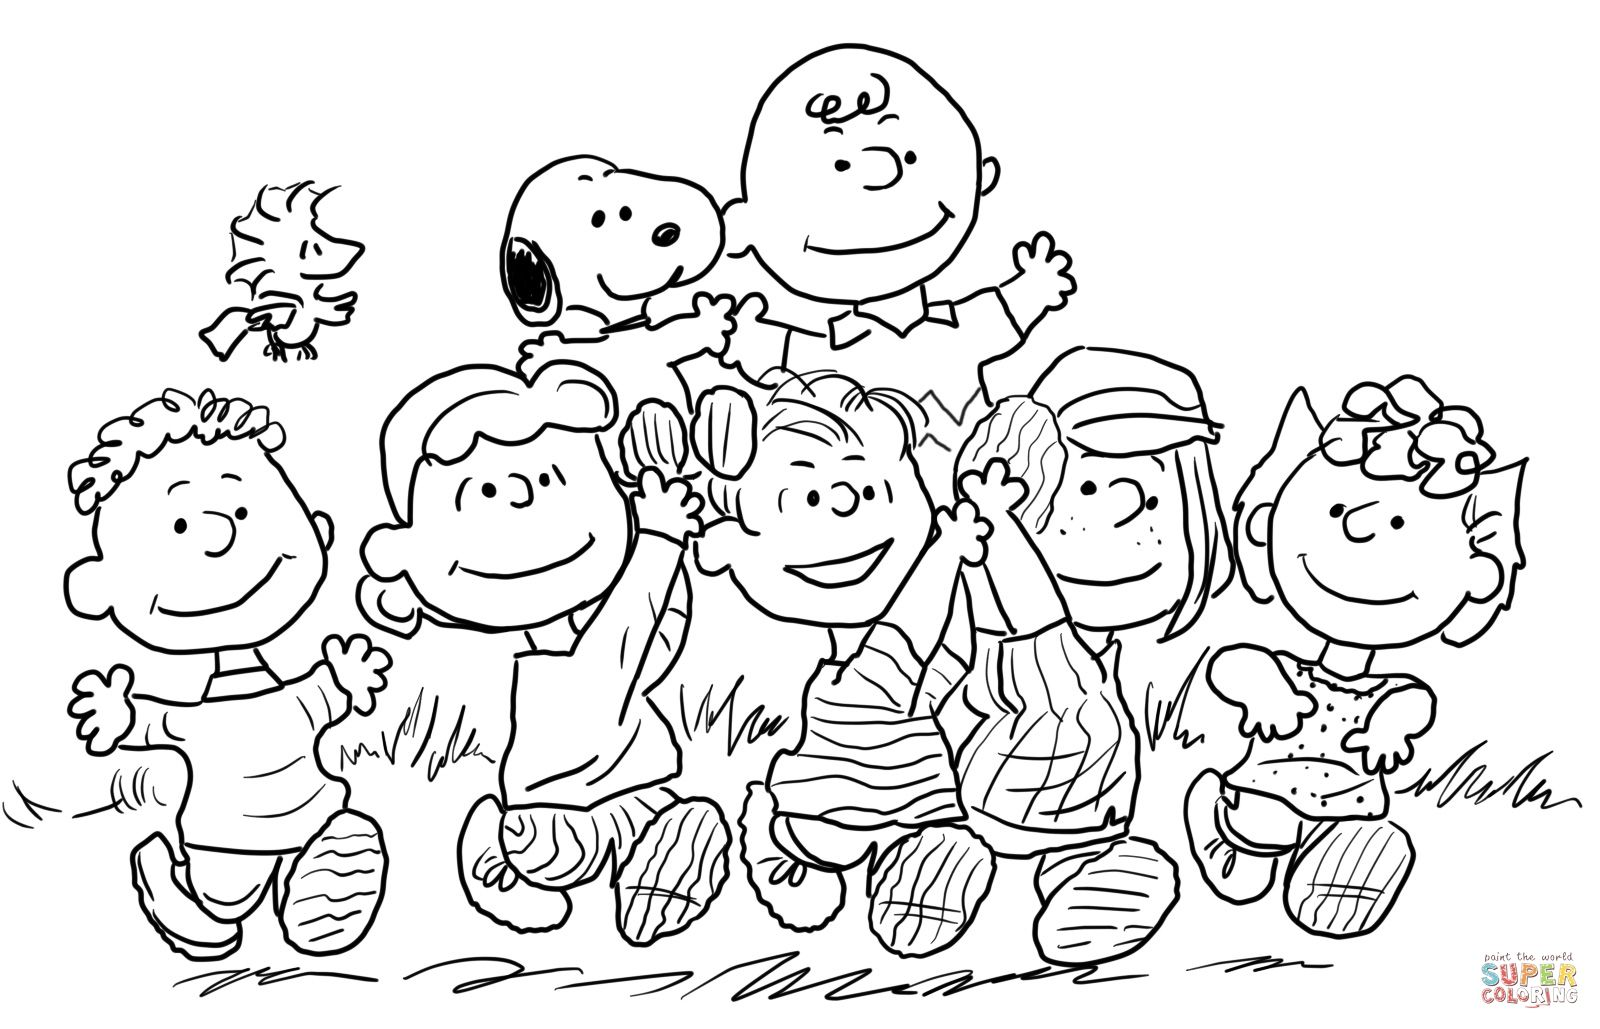 peanuts character coloring pages - photo#9